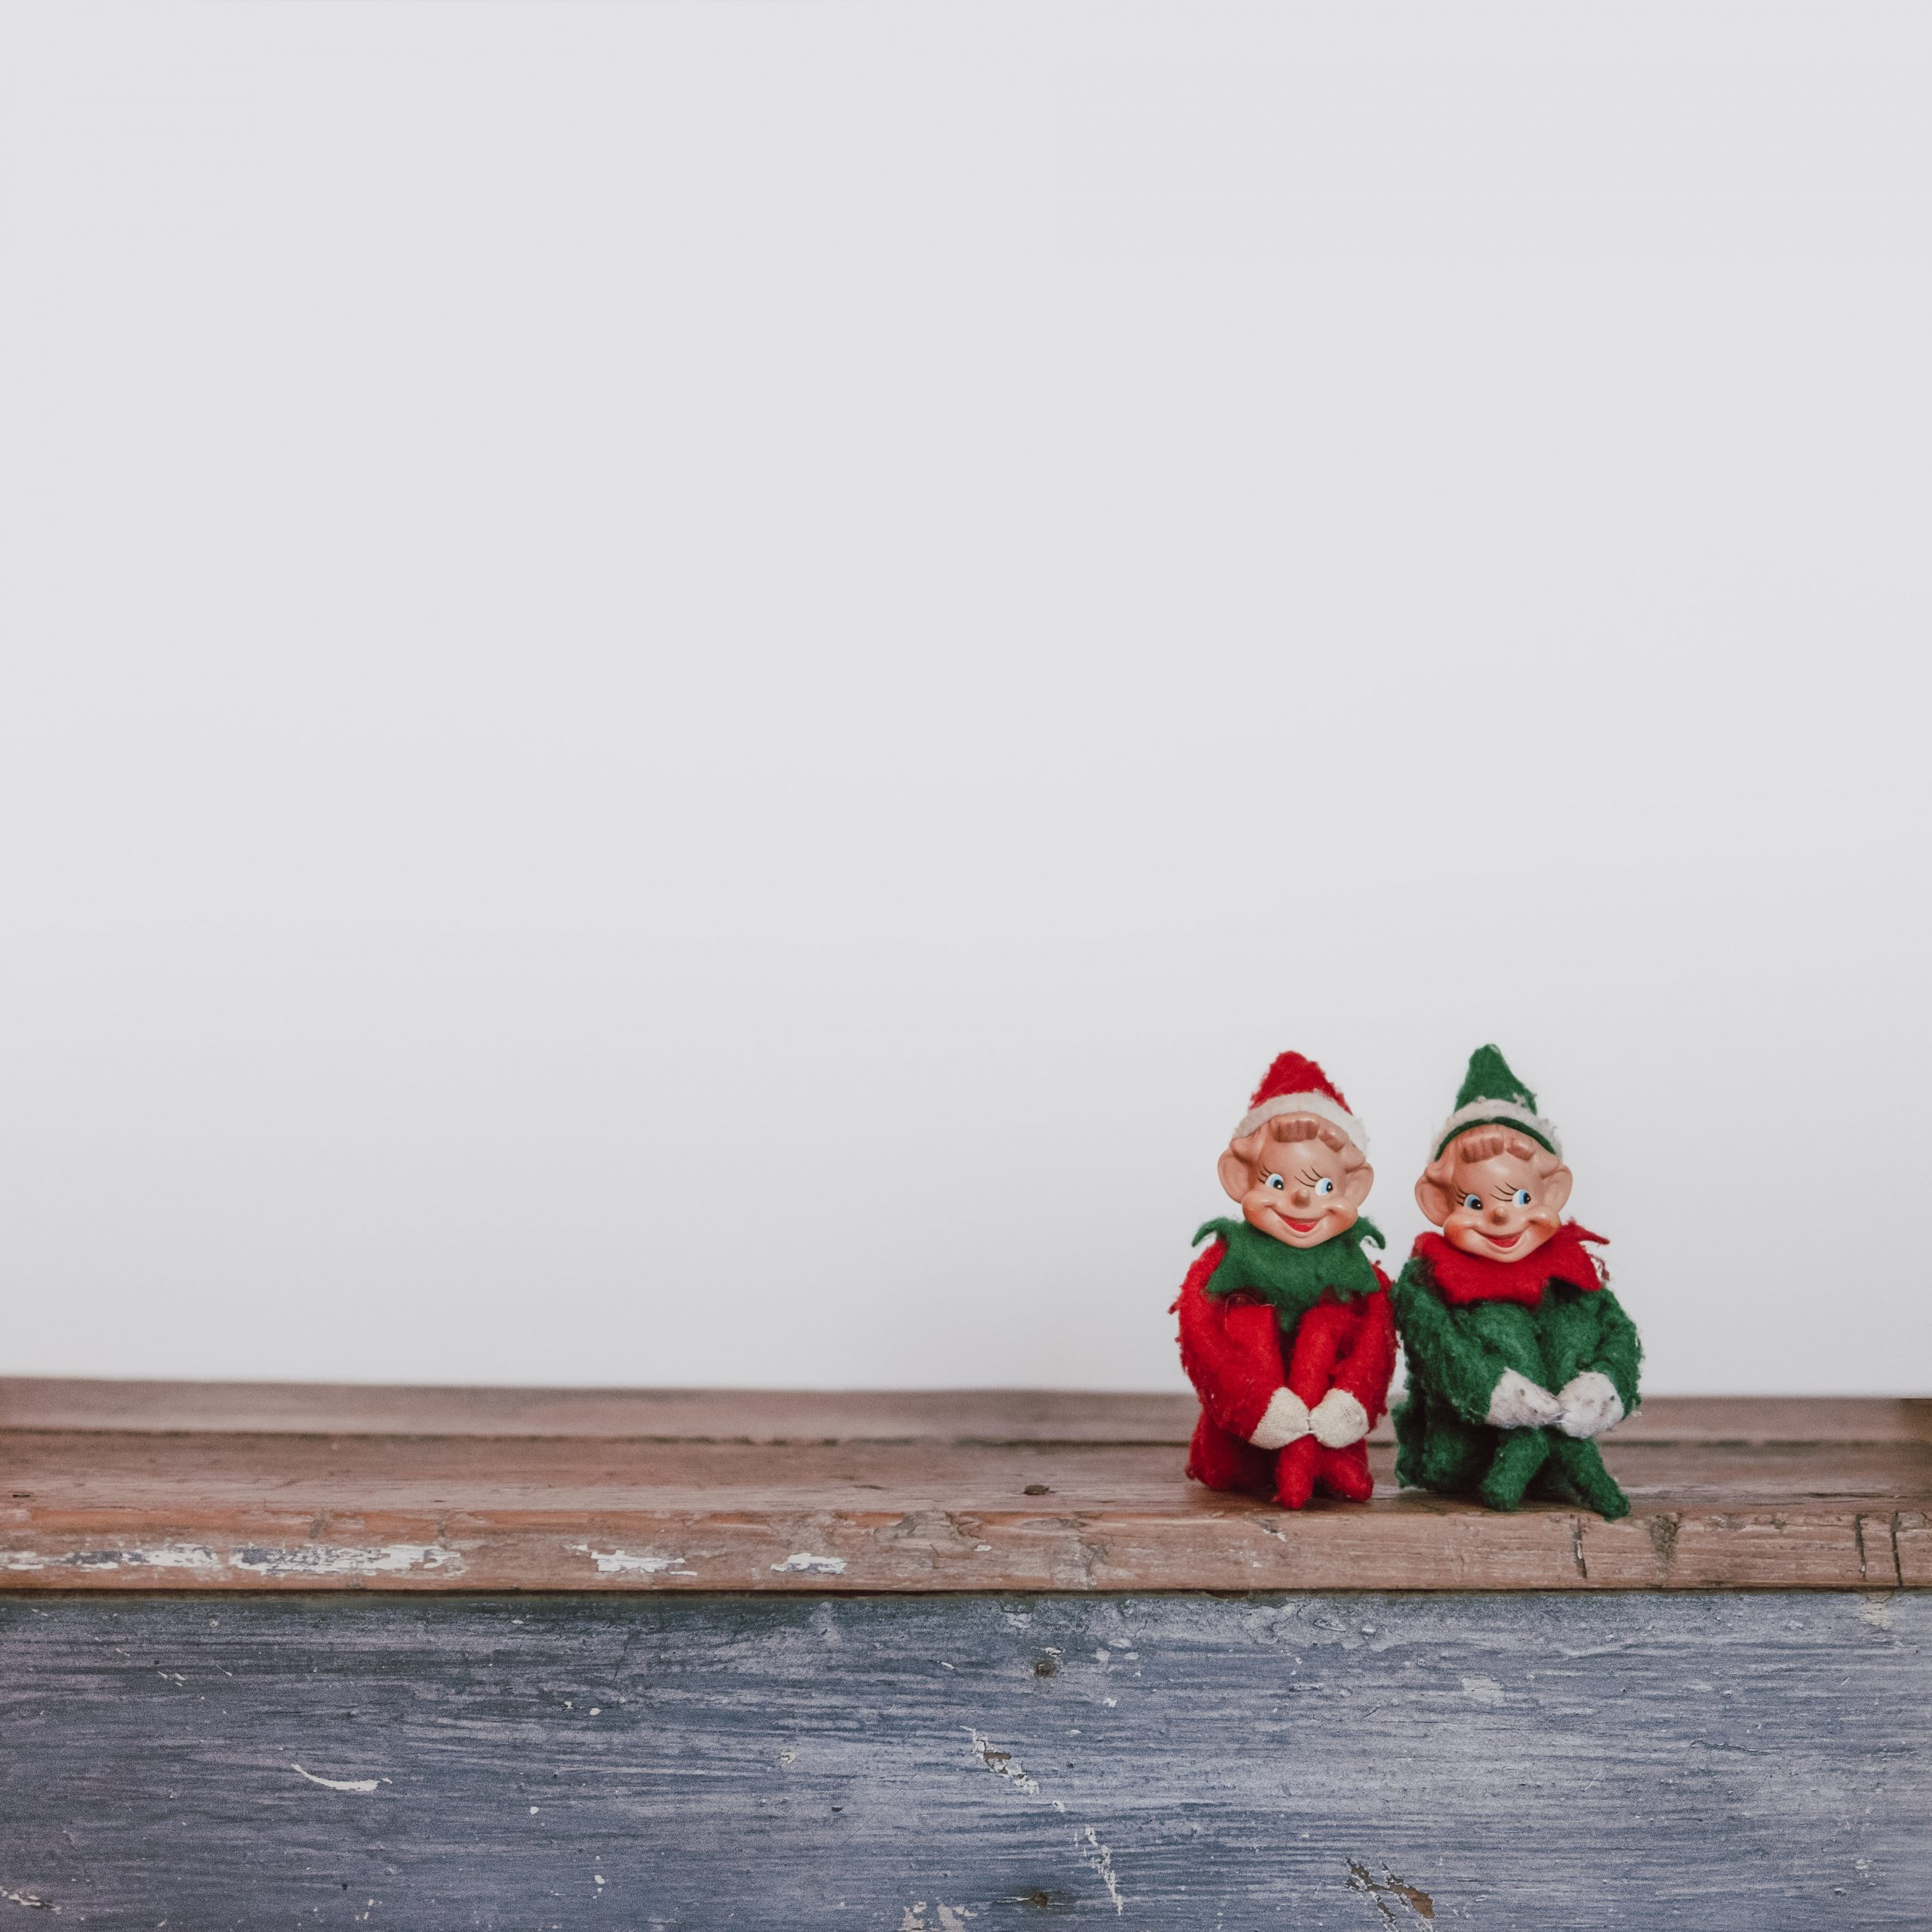 9 Christmas promotion ideas for small businesses